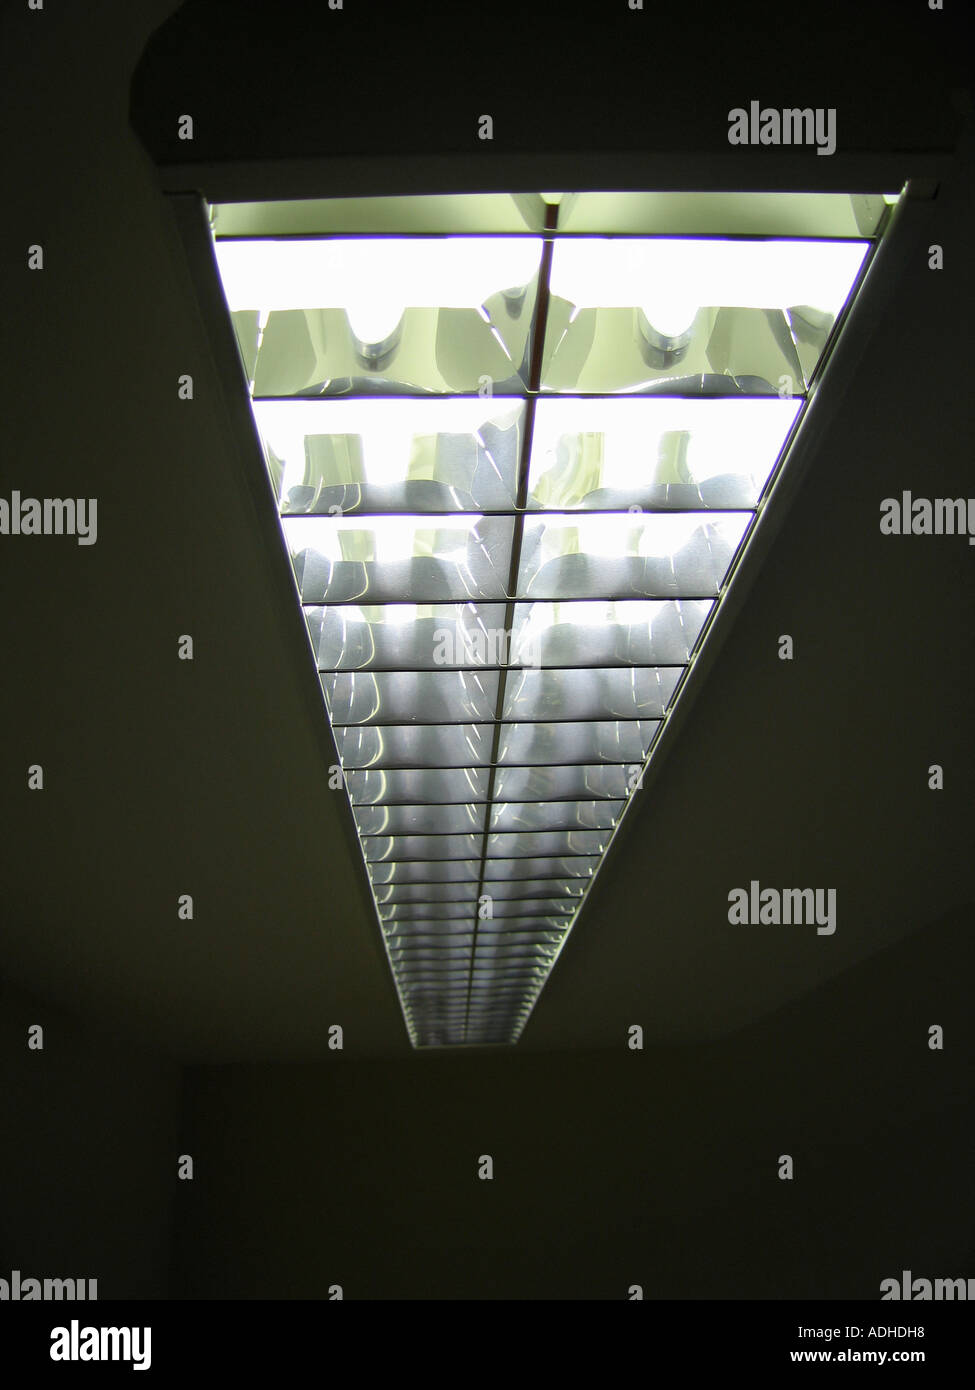 Ceiling Surface Mounted Fluorescent Light Fitting Stock